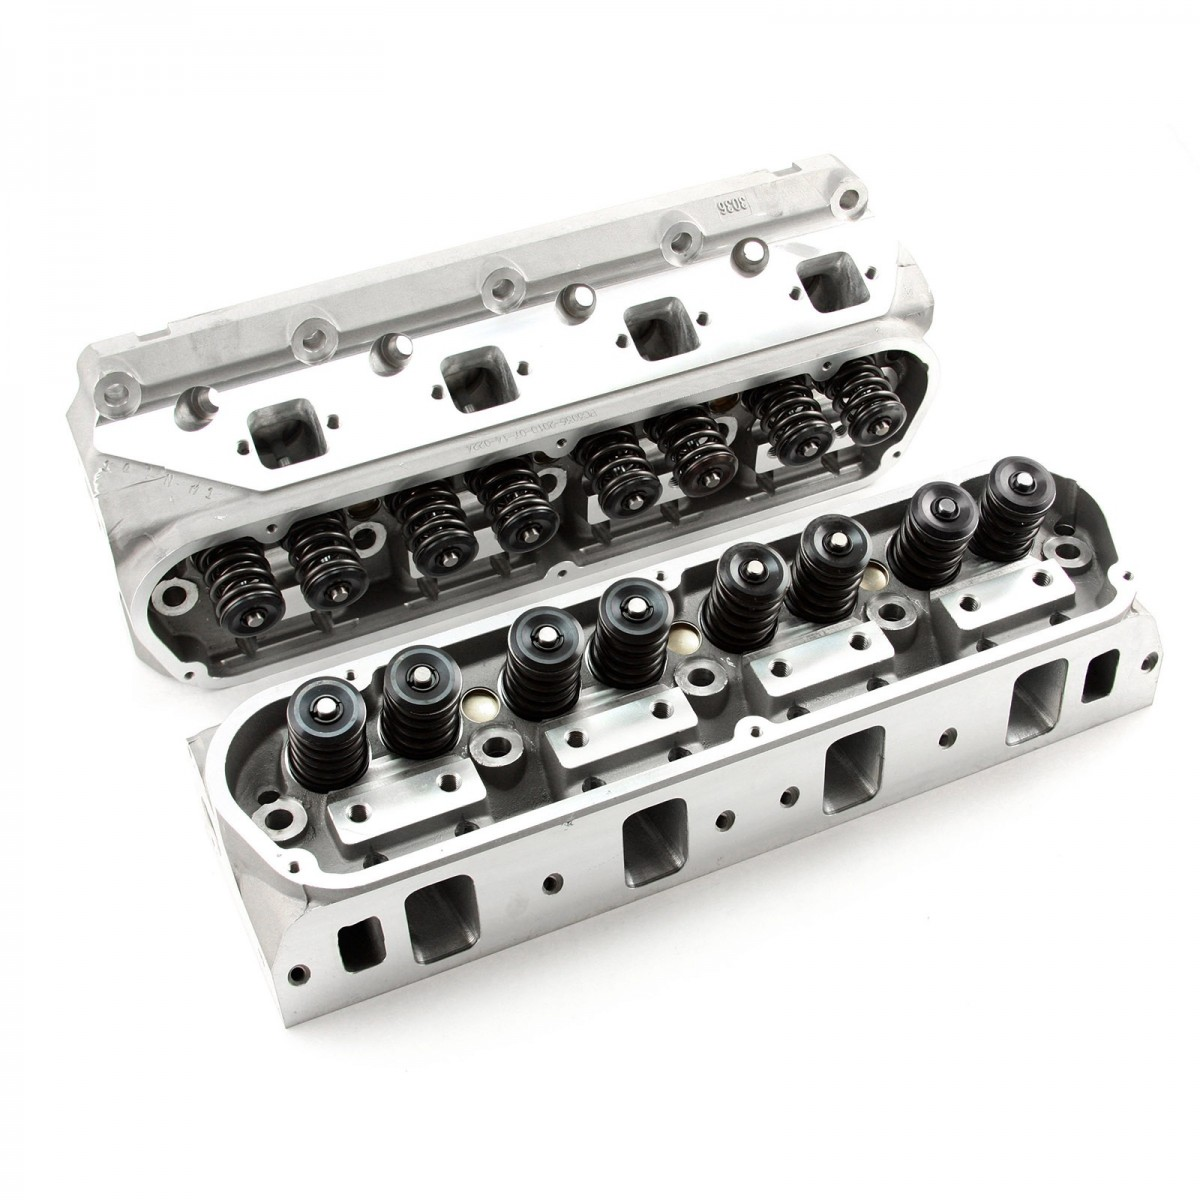 Ford Small Block 302 Aluminum Heads INTAKE HEIGHT 2.200